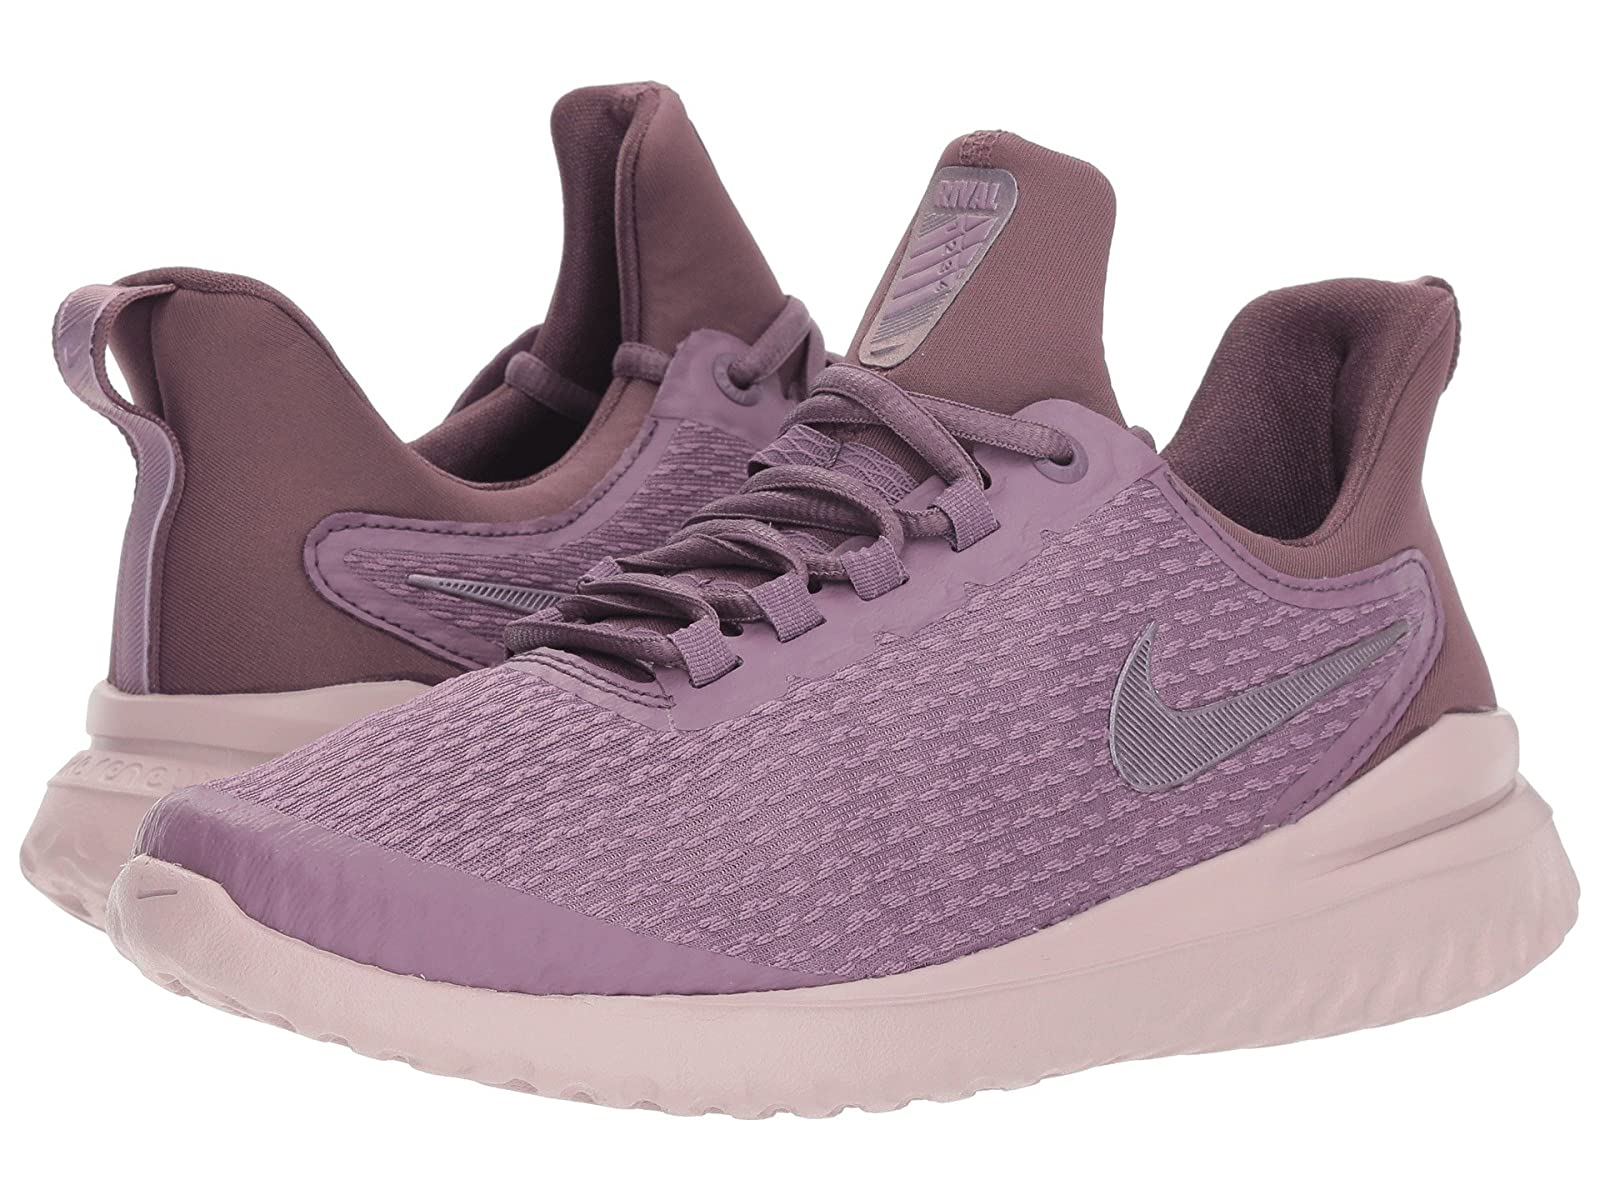 Nike Renew RivalAtmospheric grades have affordable shoes